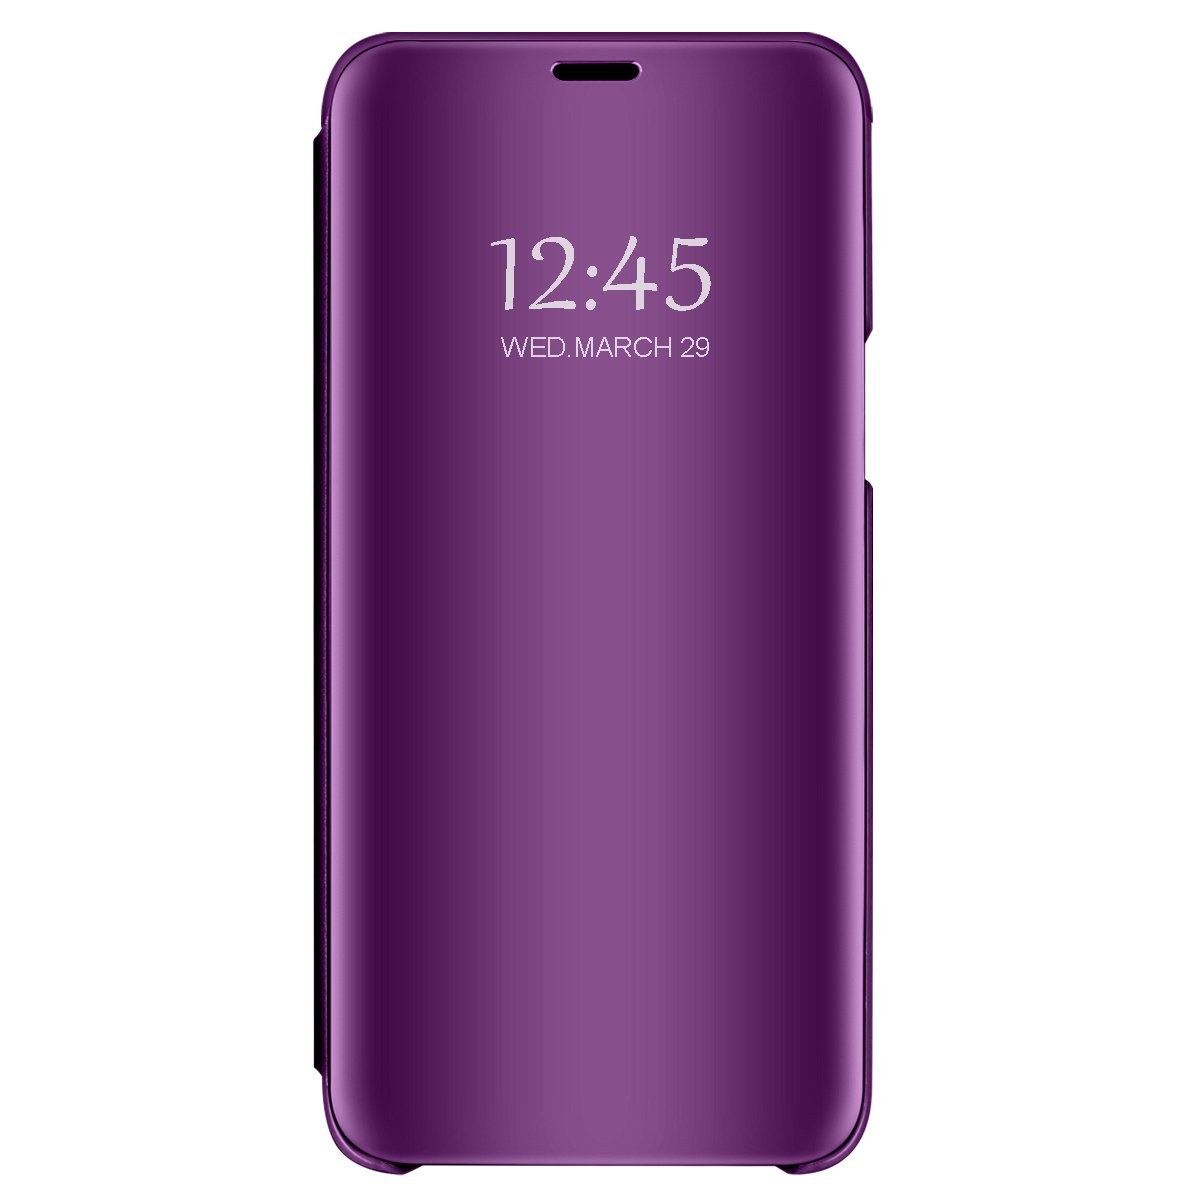 Case for Galaxy Note 8 Translucent Mirror Screen Cover Flip Stand Hard Plating Shell for Galaxy Note 8 (5, Galaxy Note 8)